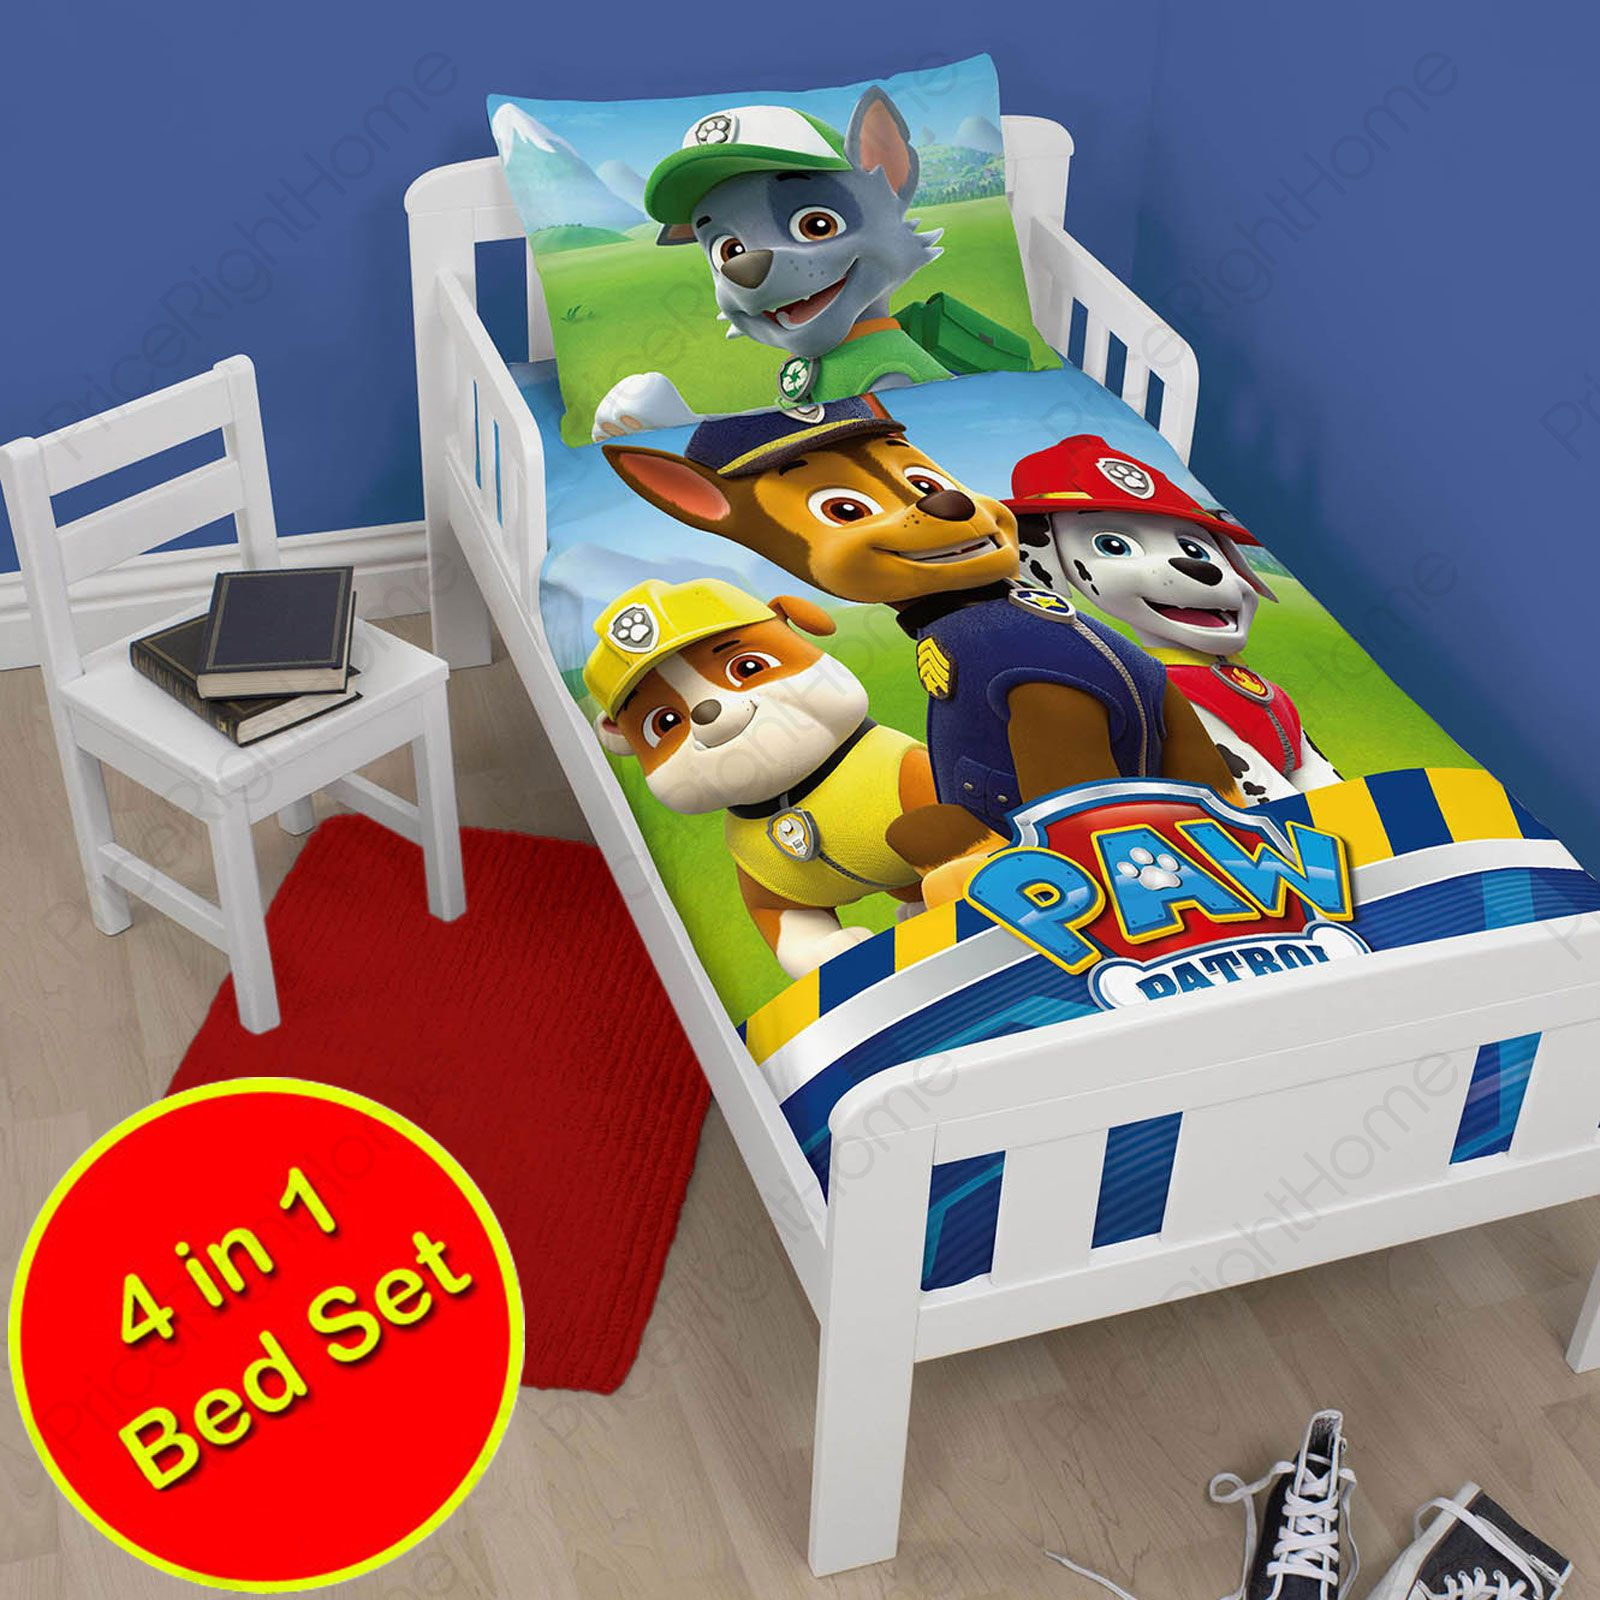 junior 4 in 1 bettw sche b ndel bettdecke kissen abdeckungen paw patrol ebay. Black Bedroom Furniture Sets. Home Design Ideas